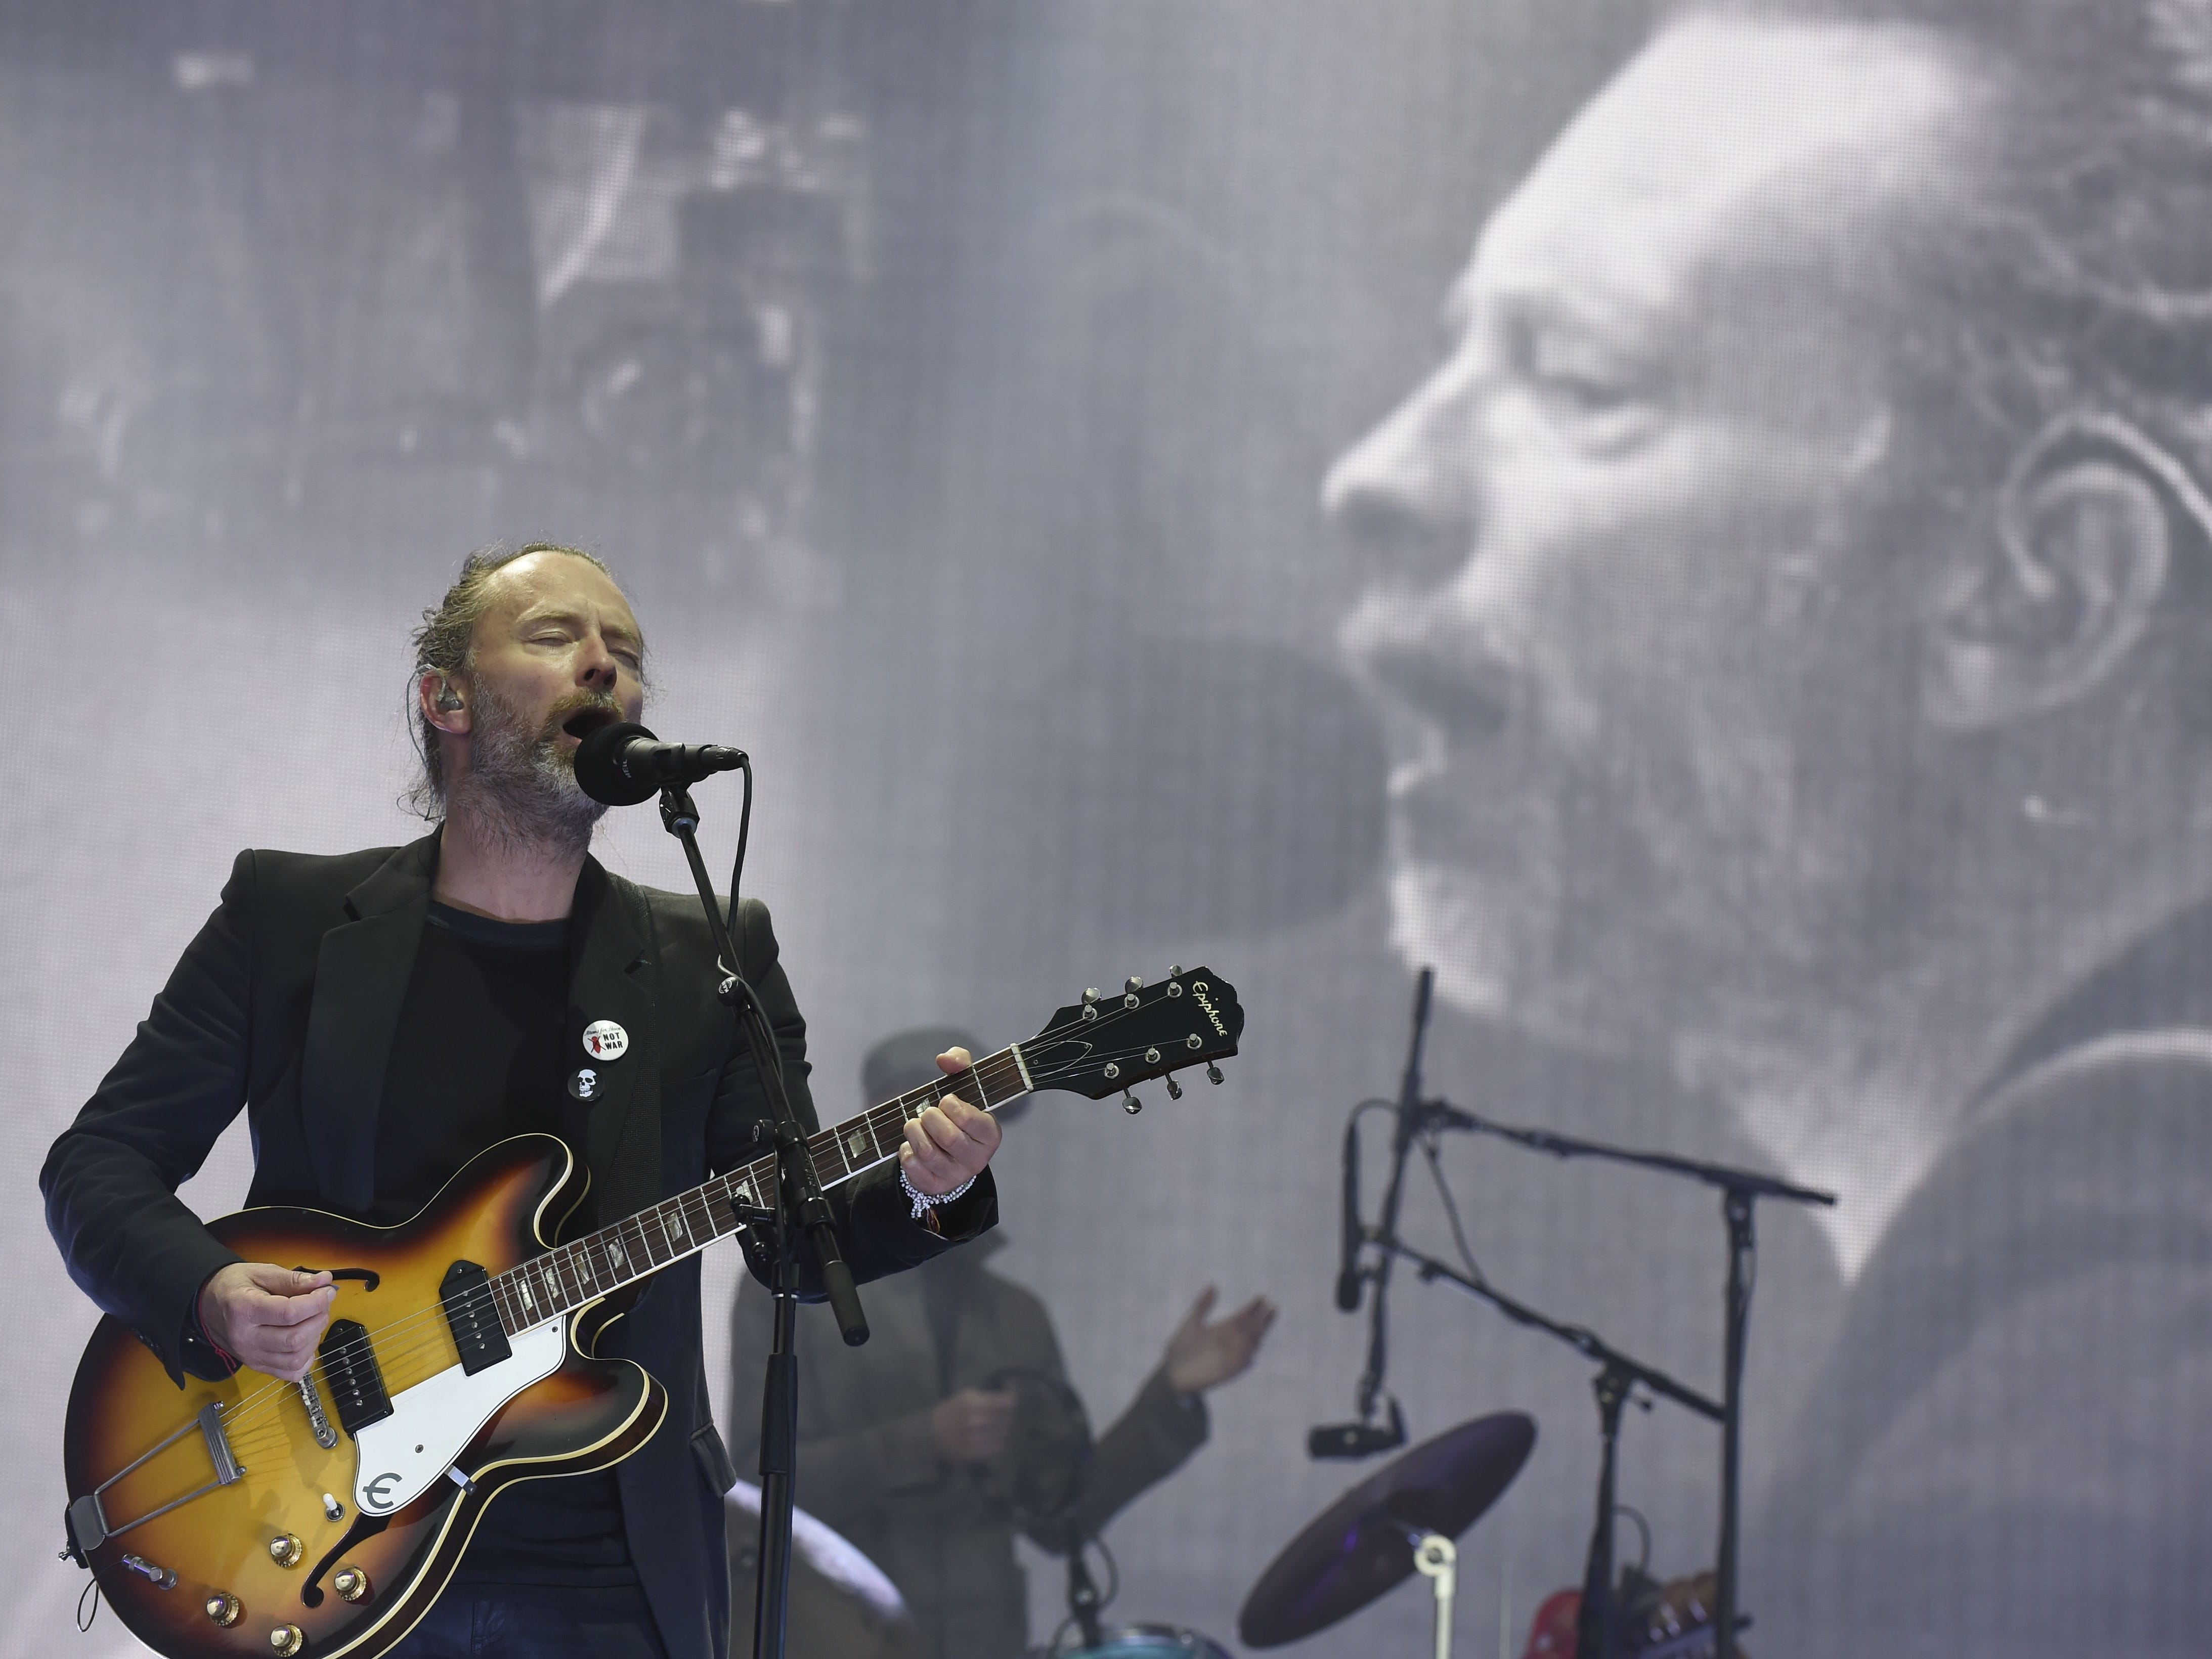 Radiohead. Here, the band headlines the main stage at the TRNSMT music Festival on Glasgow Green, in Glasgow, Scotland, July 7, 2017.